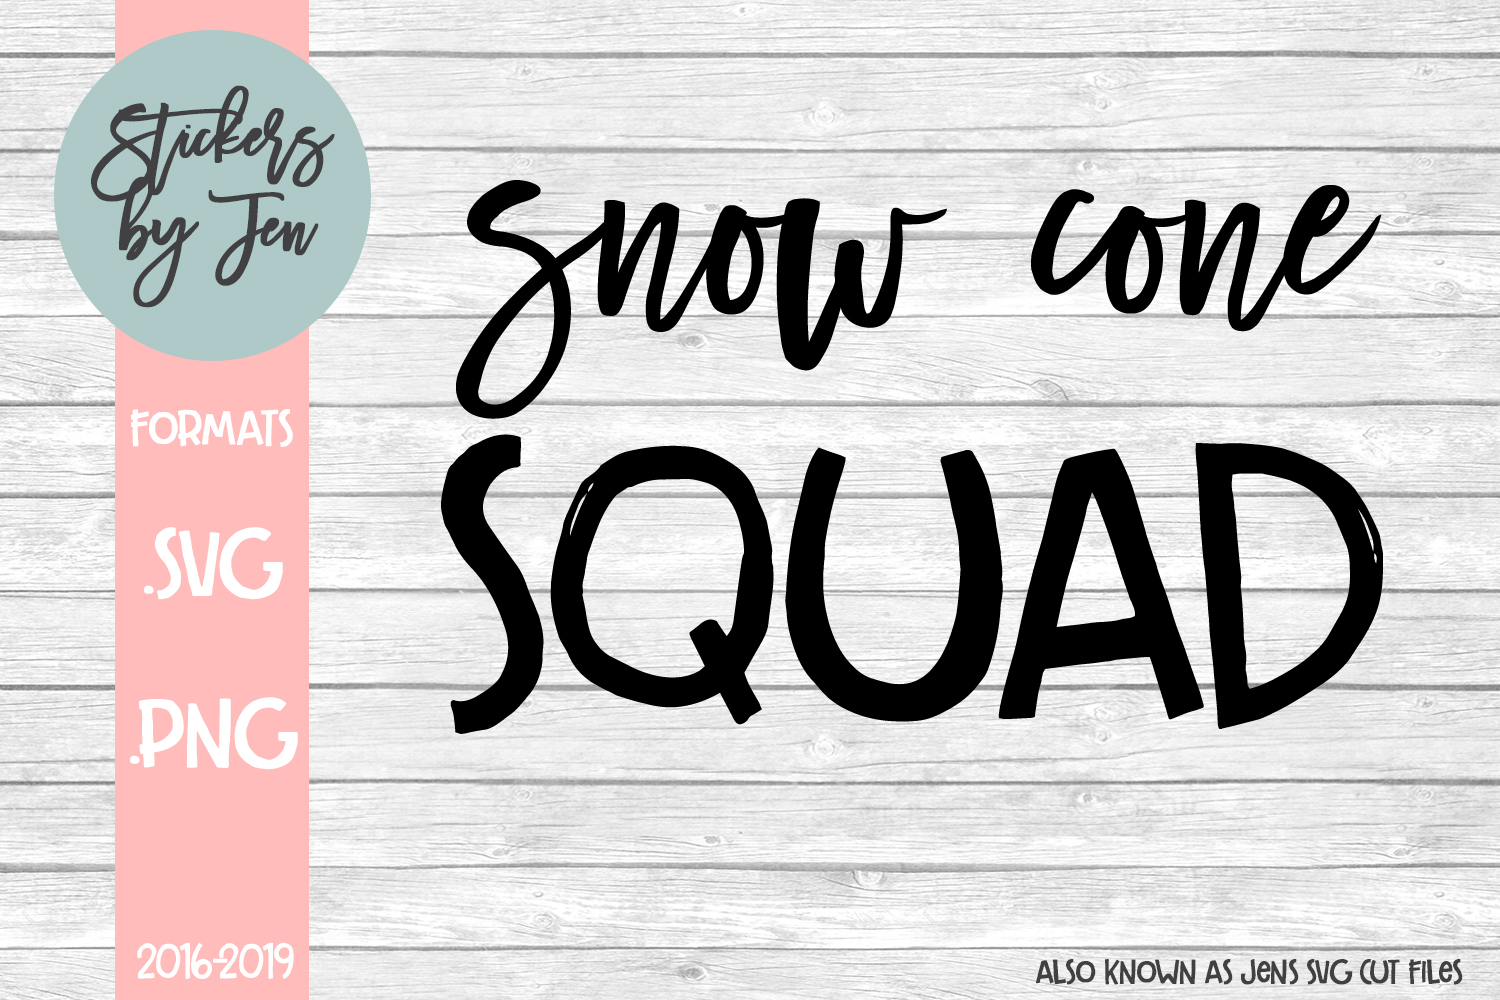 Snow Cone Squad svg cut file example image 1